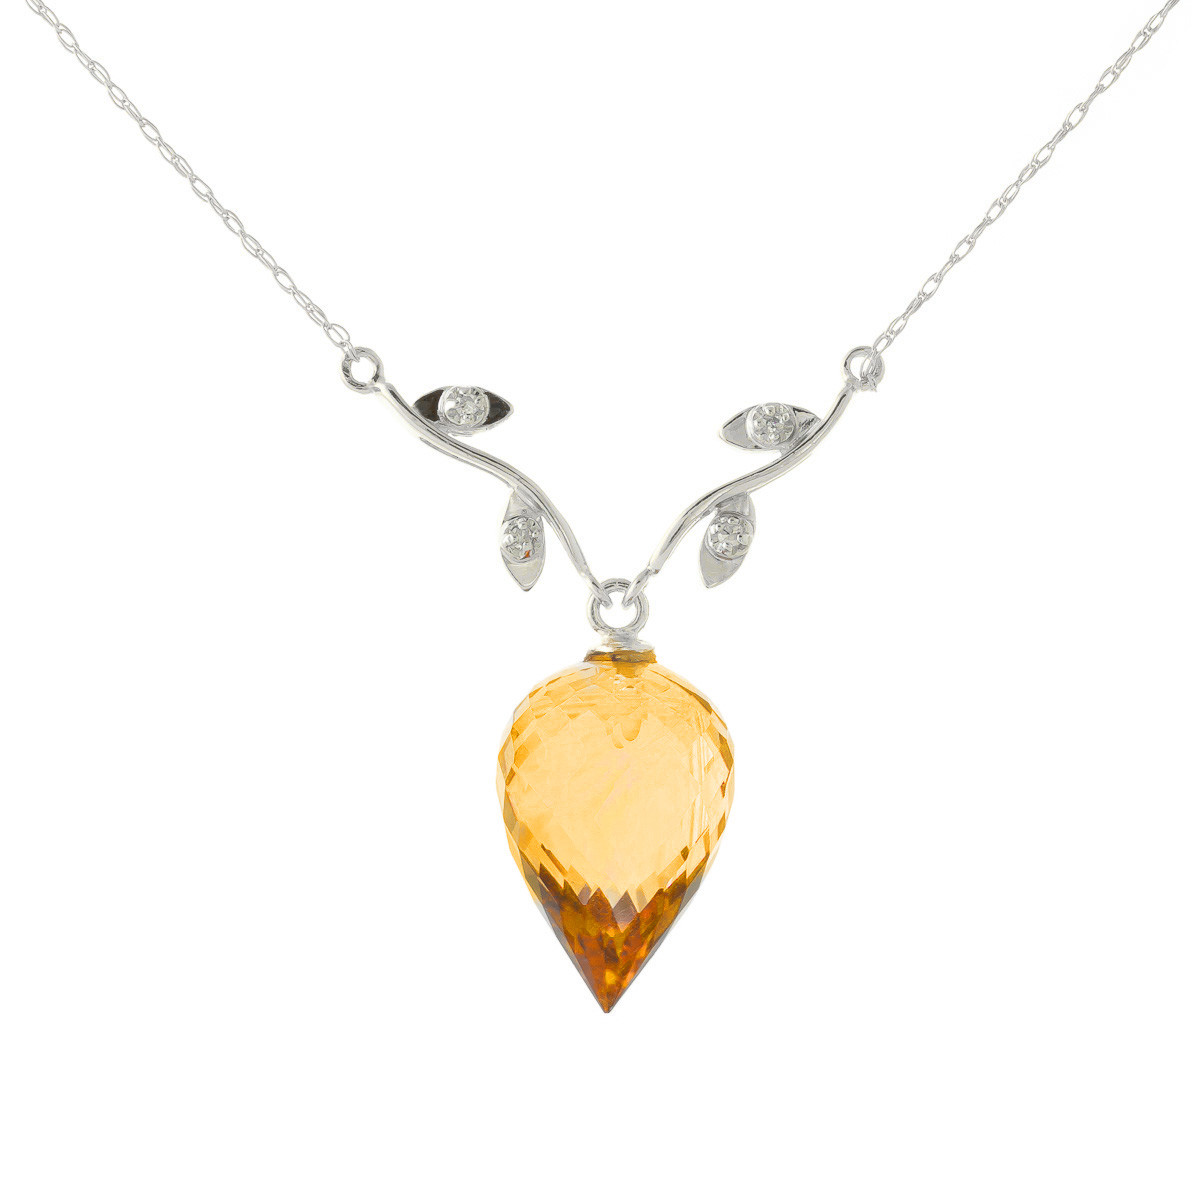 Pointed Briolette Cut Citrine Pendant Necklace 9.52 ctw in 9ct White Gold